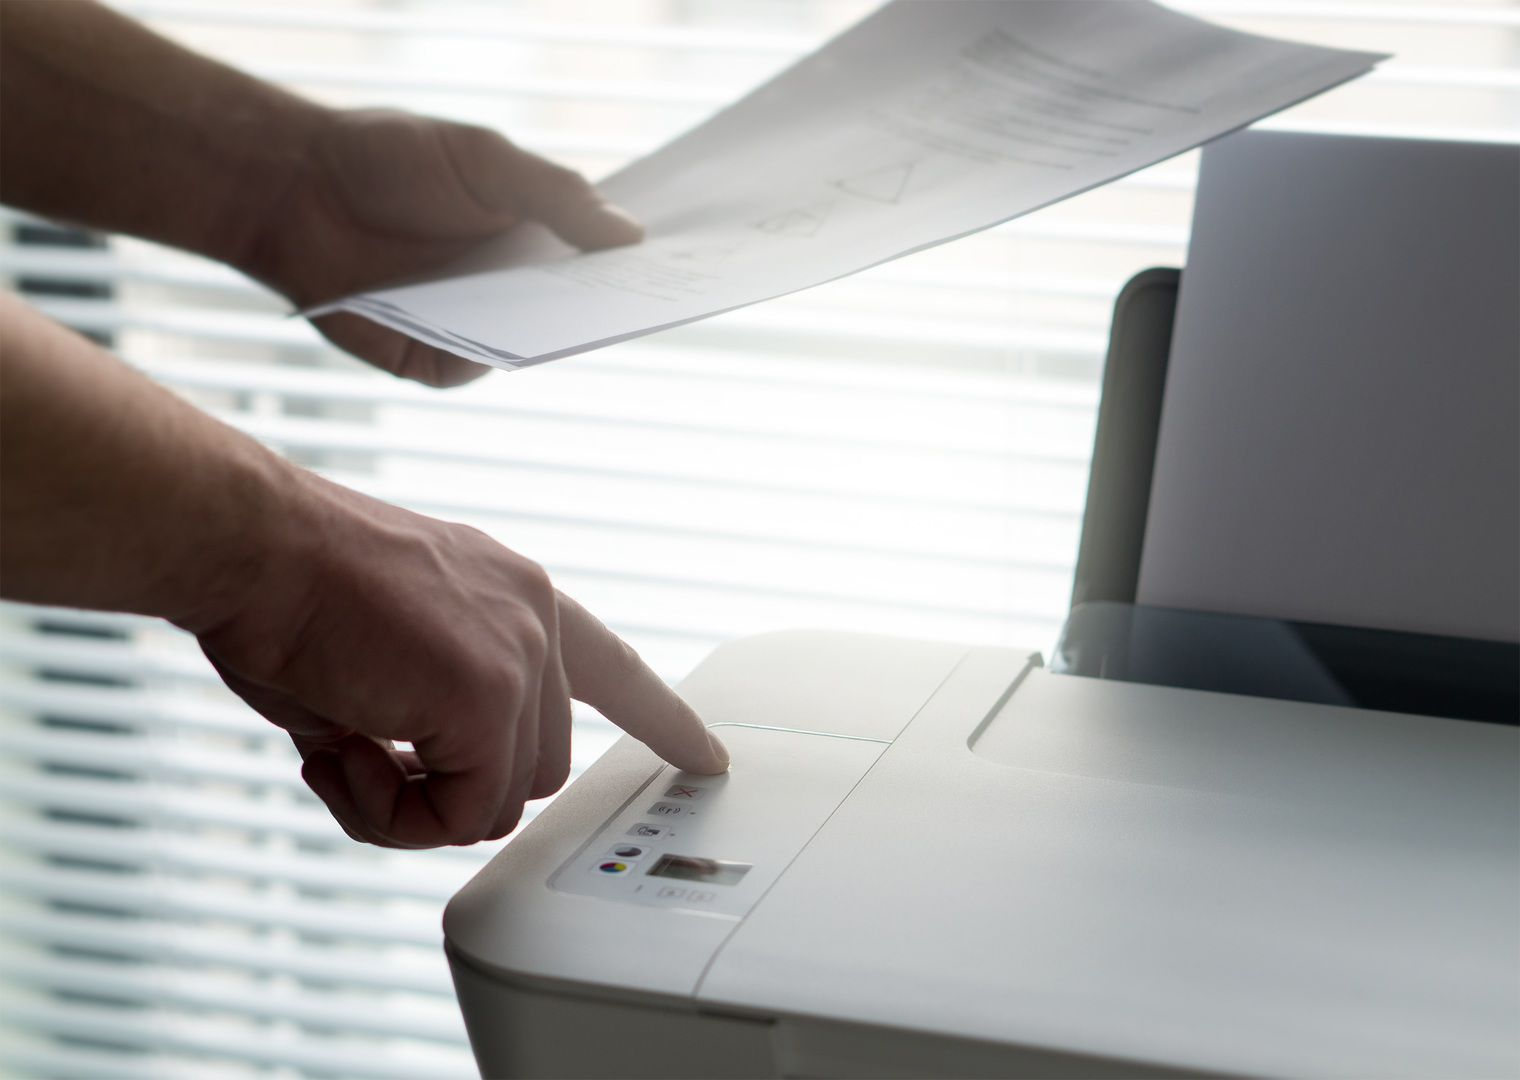 Someone holding papers and pressing a button on a printer to stop a print job